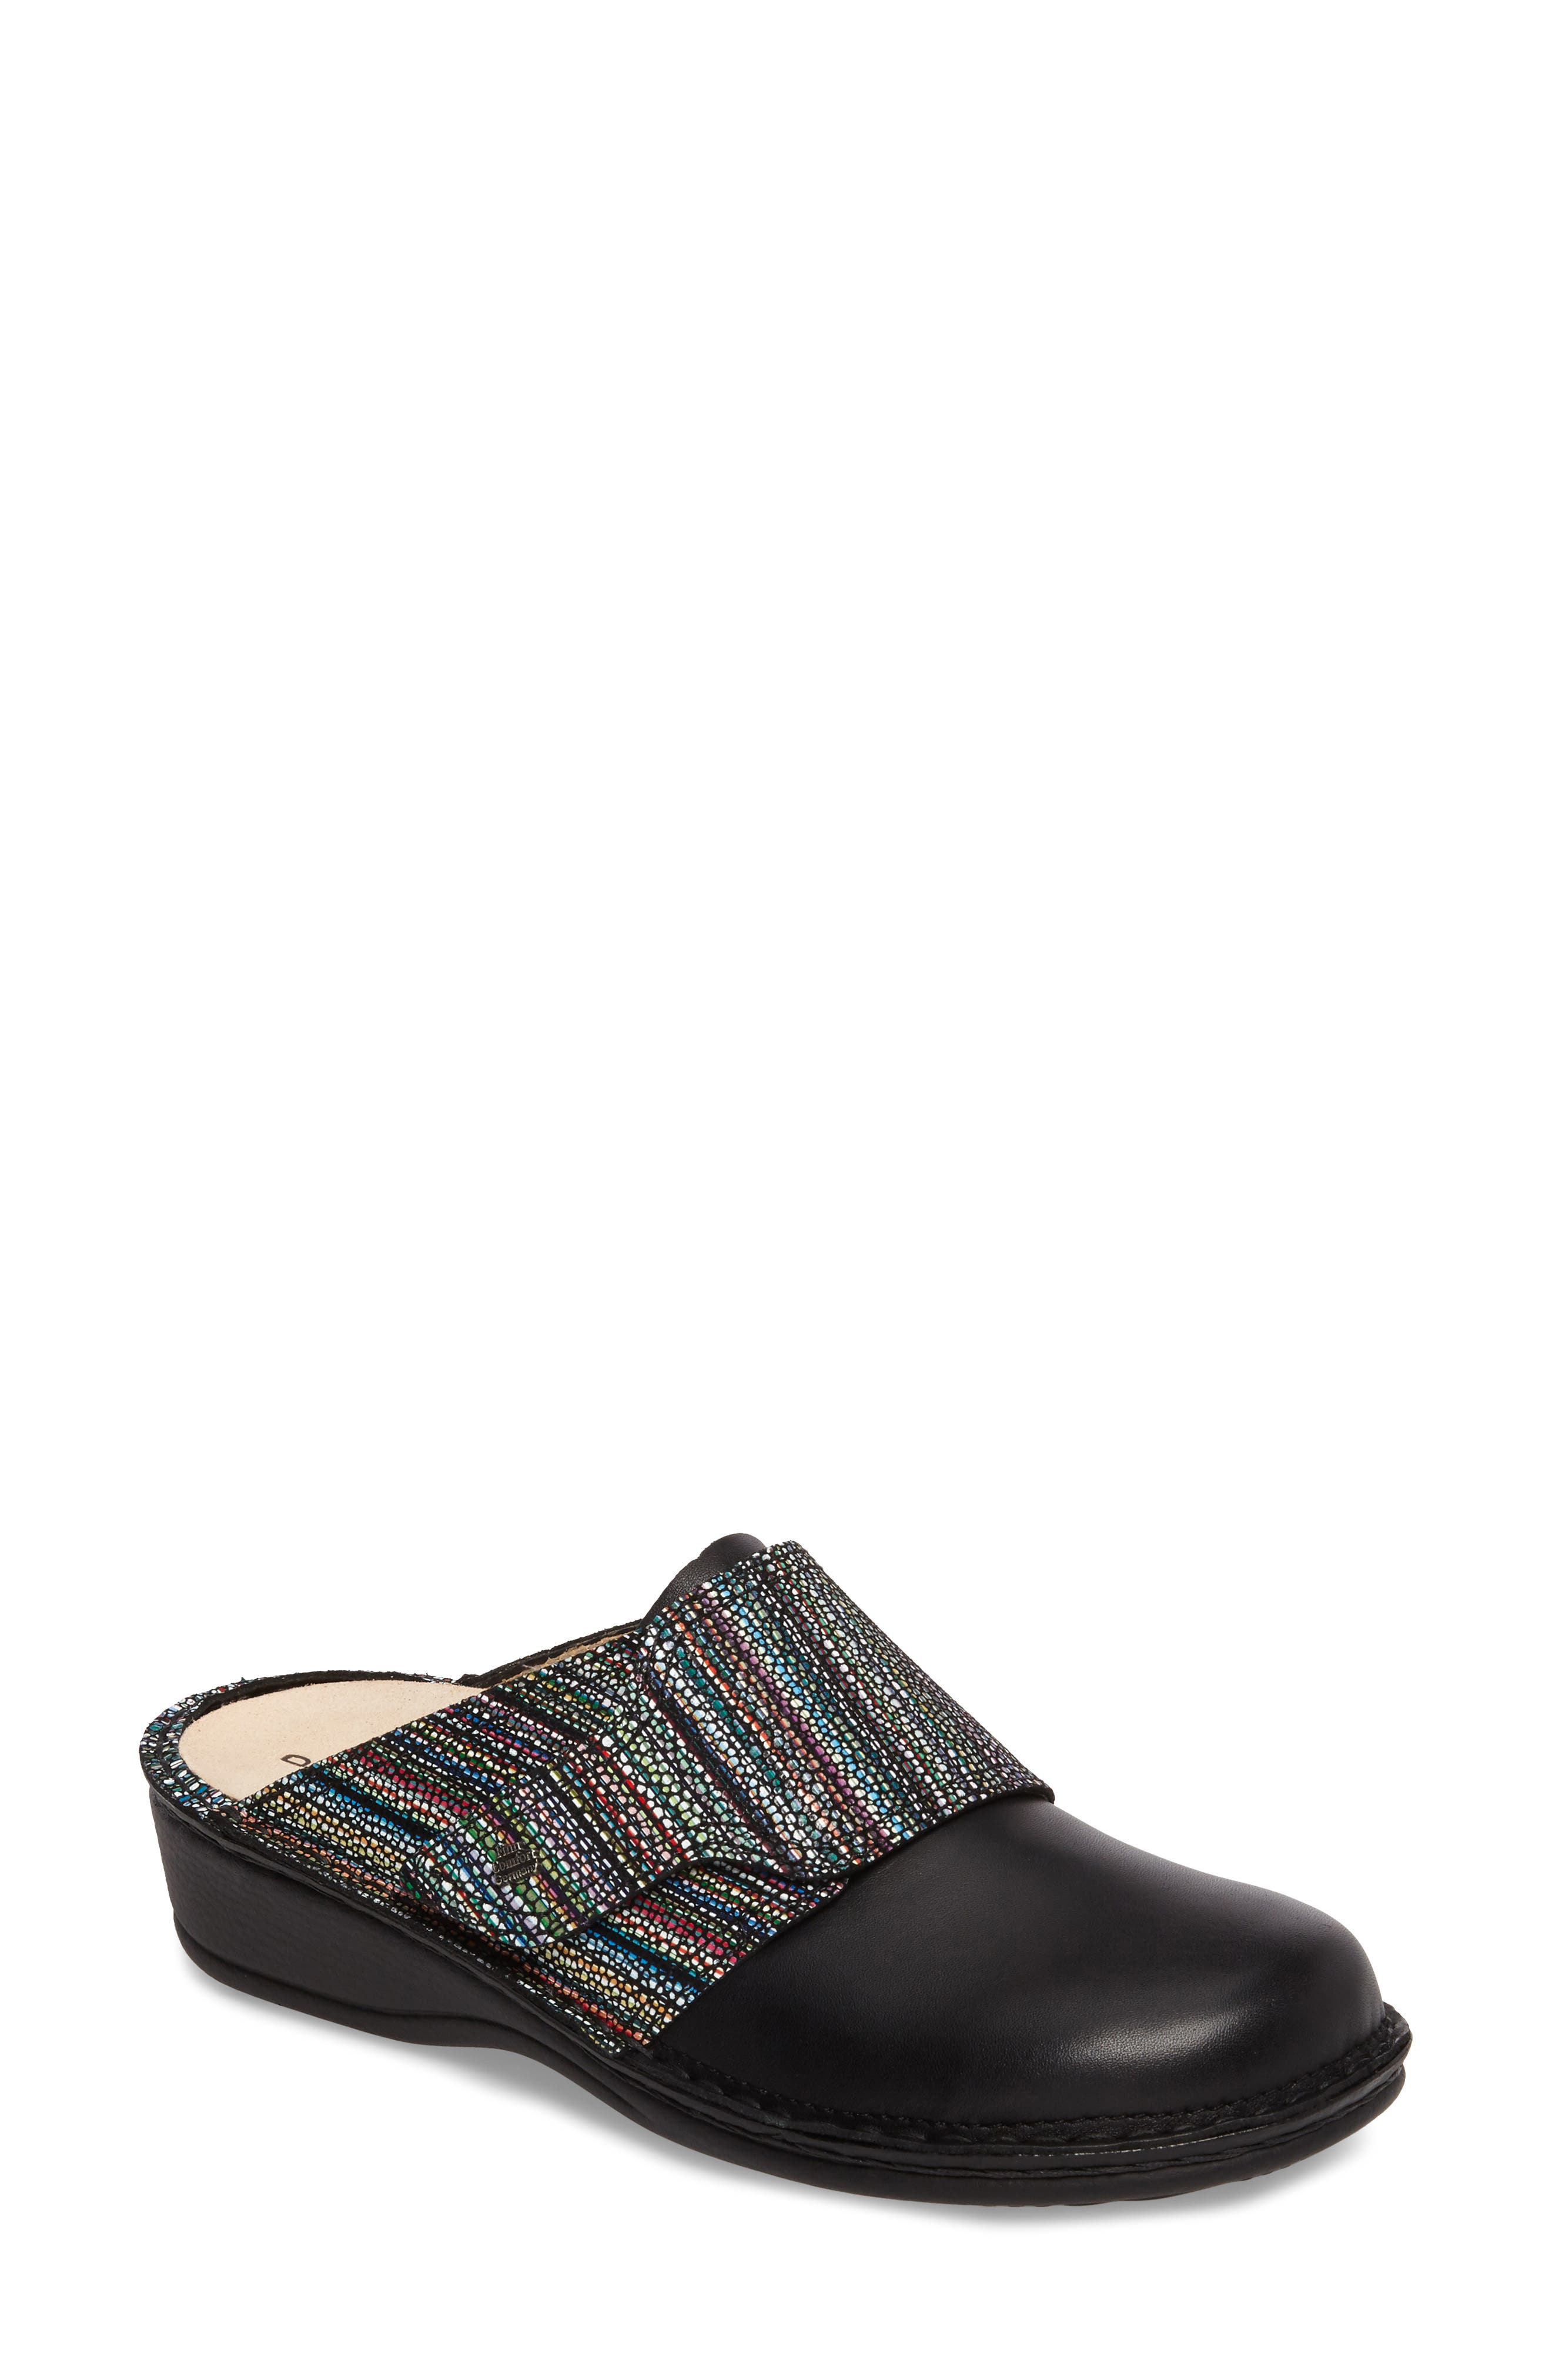 Alternate Image 1 Selected - Finn Comfort Aussee Clog (Women)